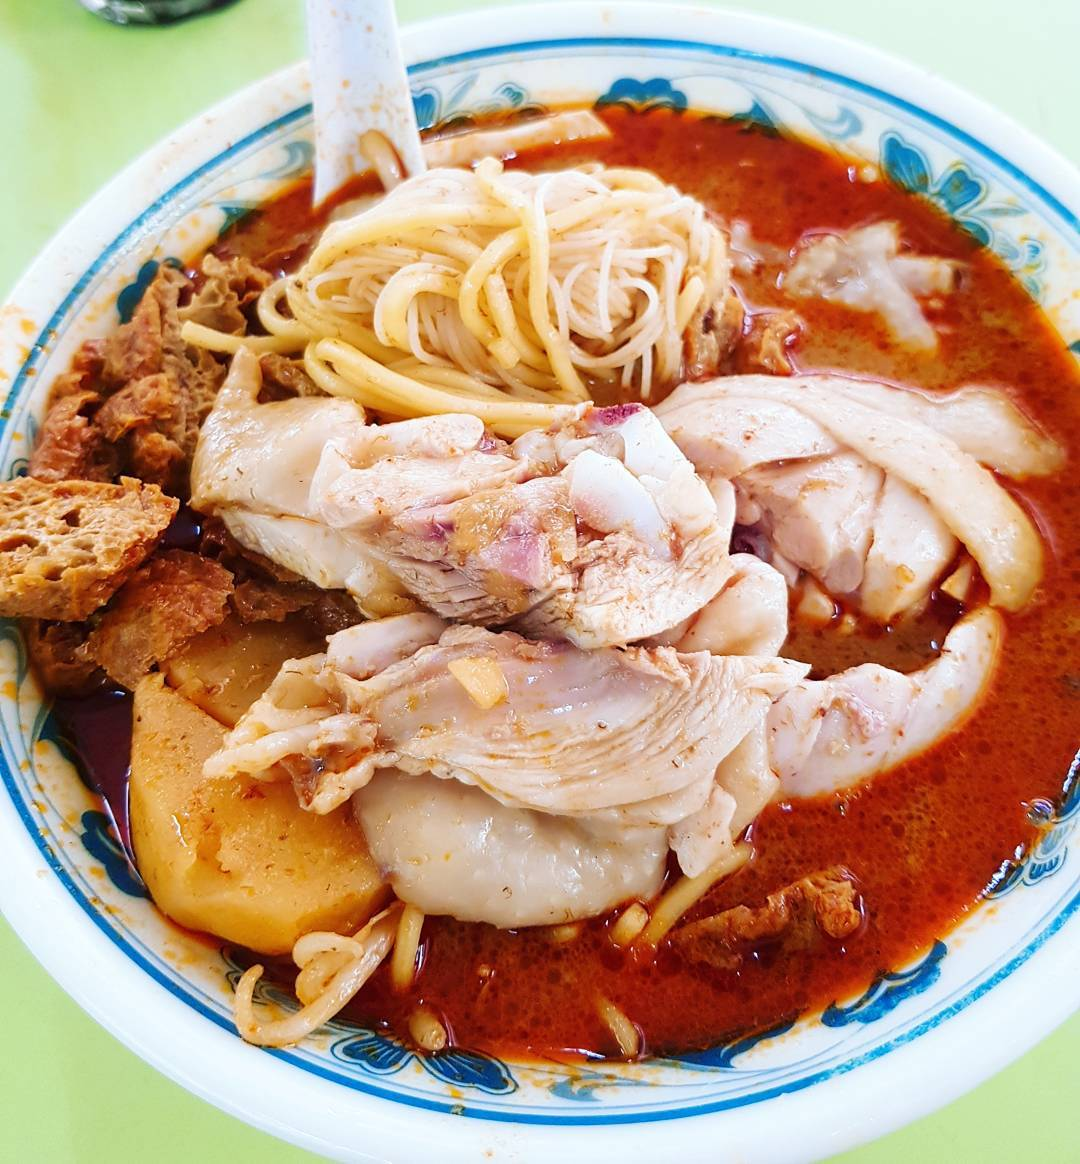 Hong Lim Food Centre - Heng Kee Curry Chicken Bee Hoon Mee